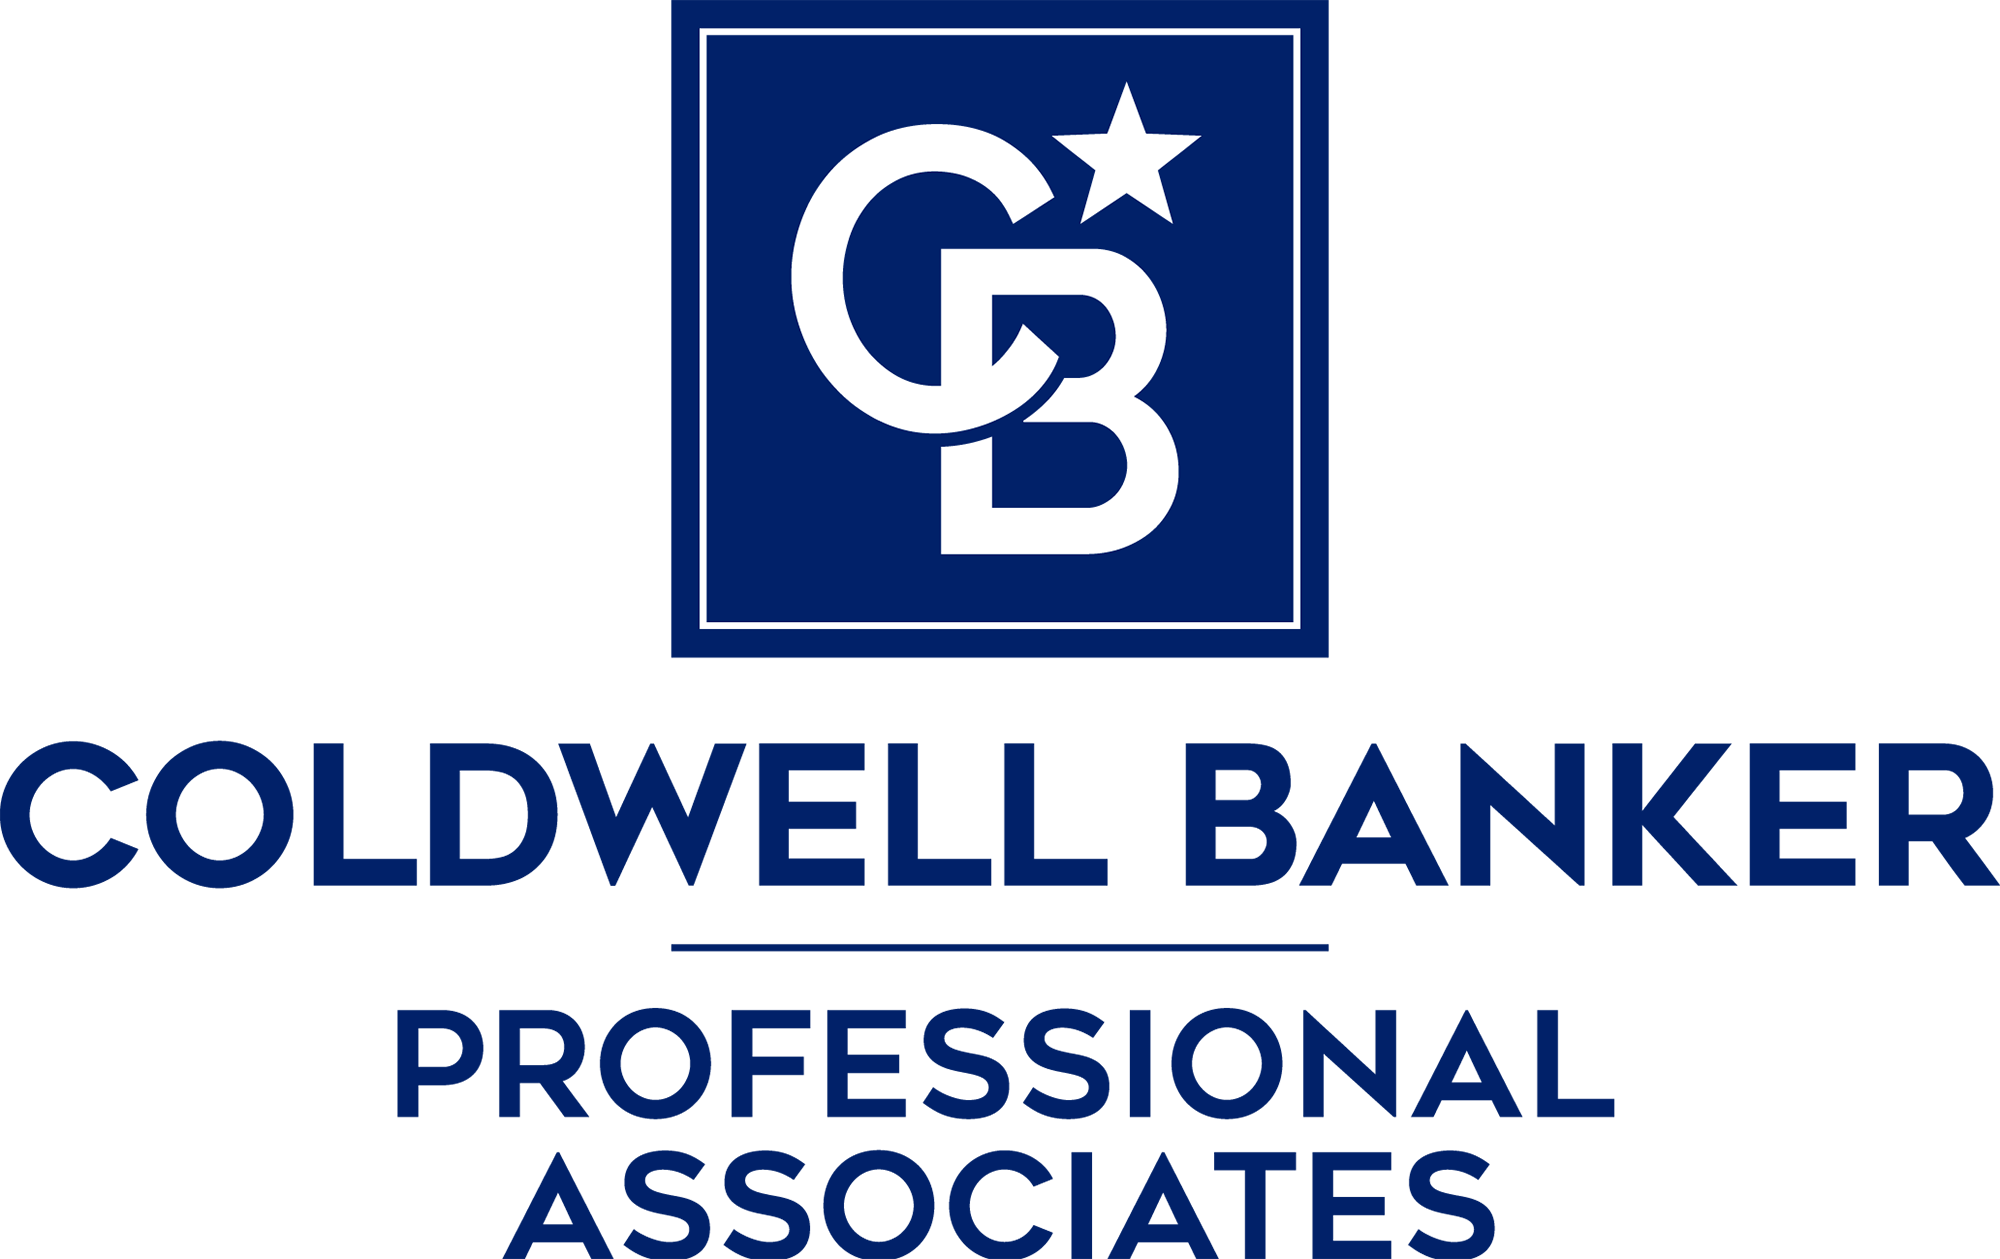 Kelly Brown - Coldwell Banker Professional Associates Logo